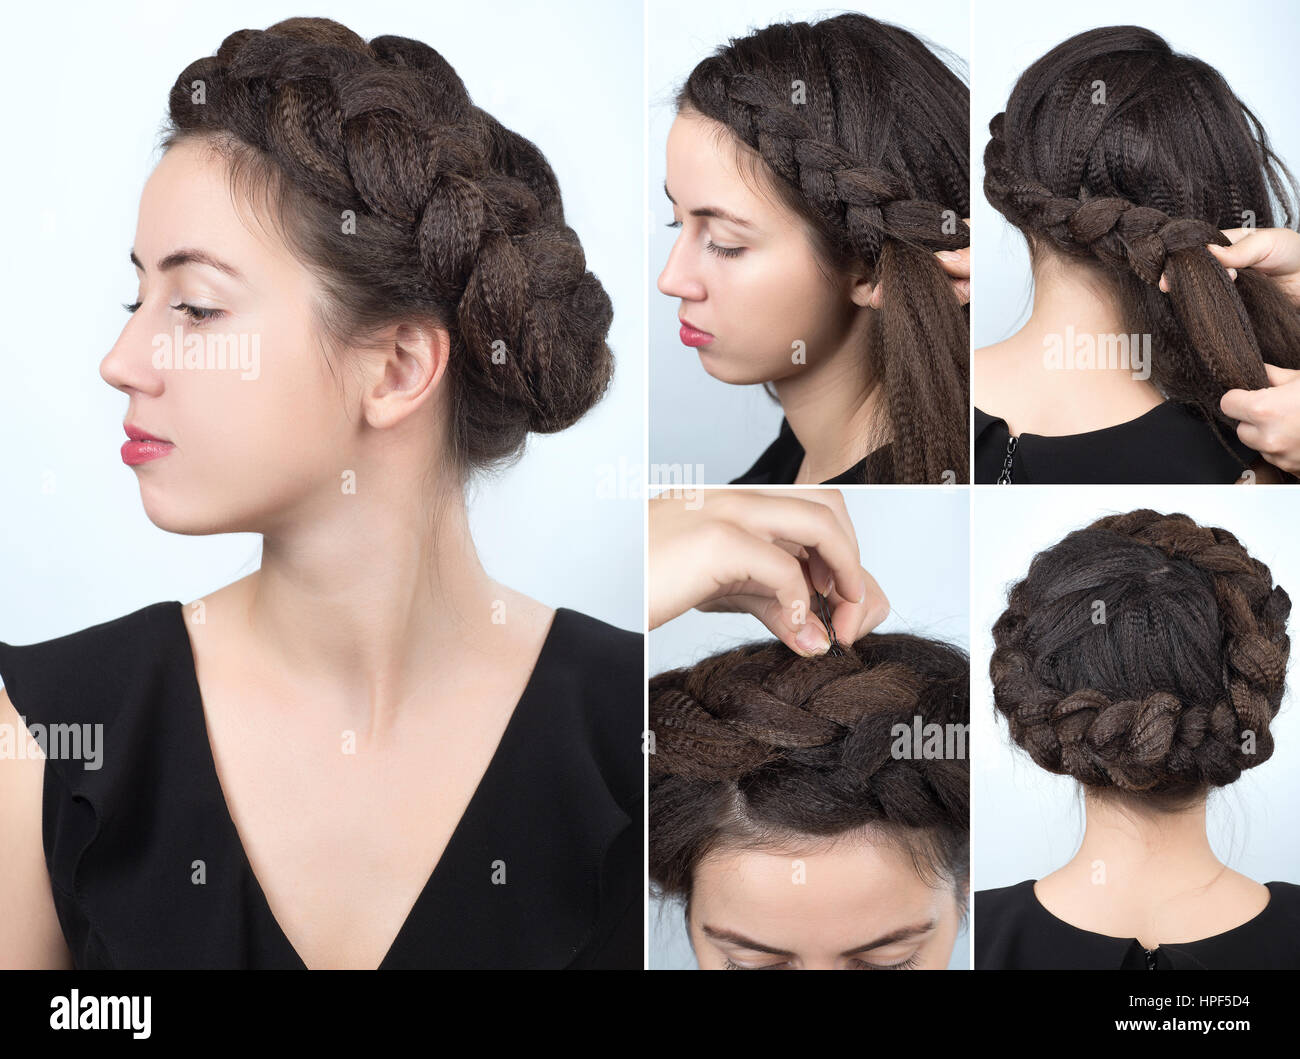 Process of weaving braid hairstyle for long hair boho style stock hairstyle for long hair boho style hairstyle volume braided crown tutorial step by step hairstyle for long hair baditri Choice Image